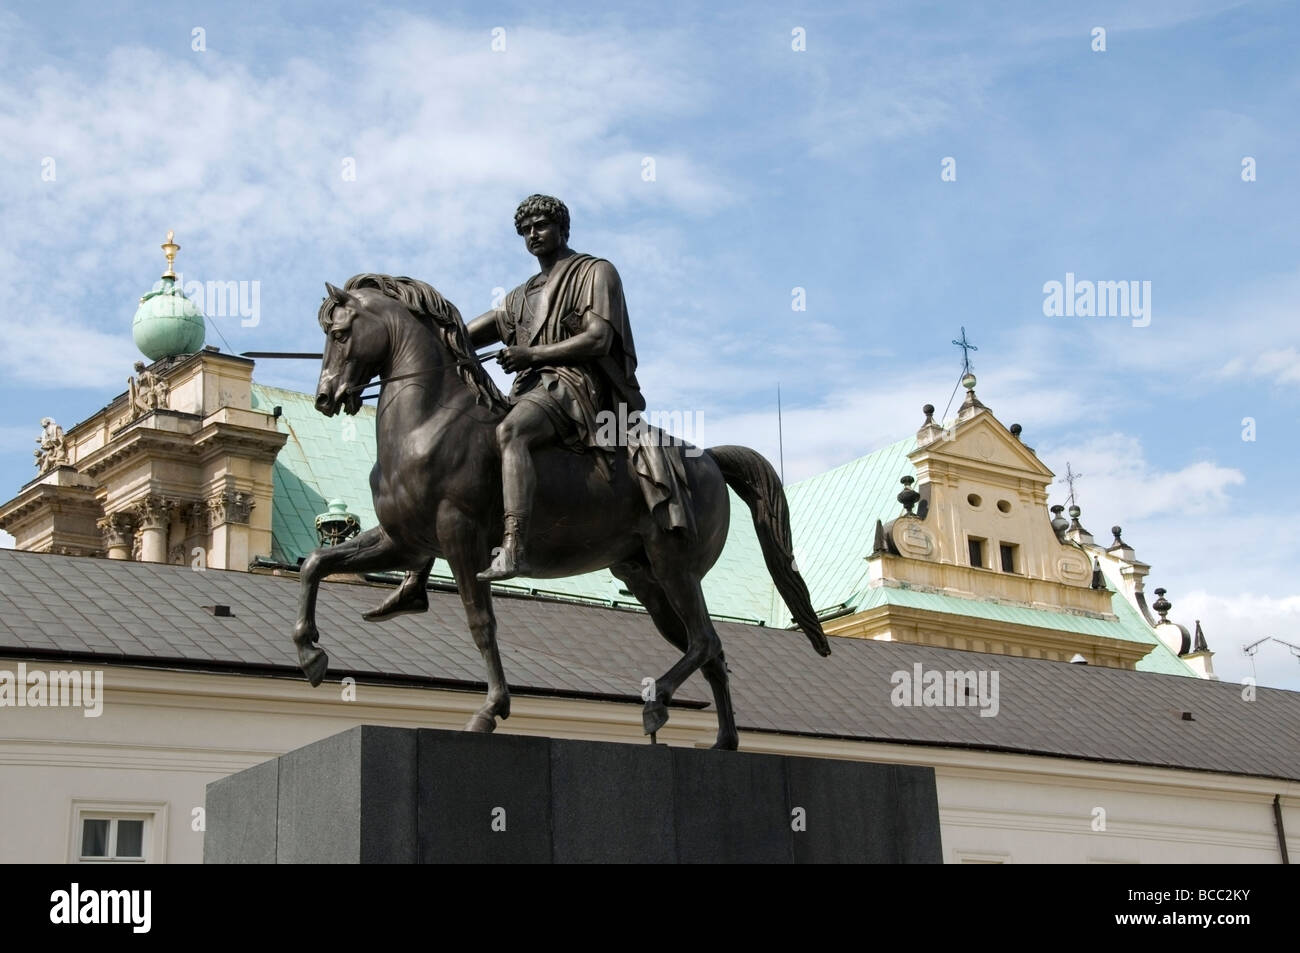 Historical statue of Prince Jozef Poniatowski, equestrian monument and top of Church Carmelite, Warsaw, Poland, - Stock Image